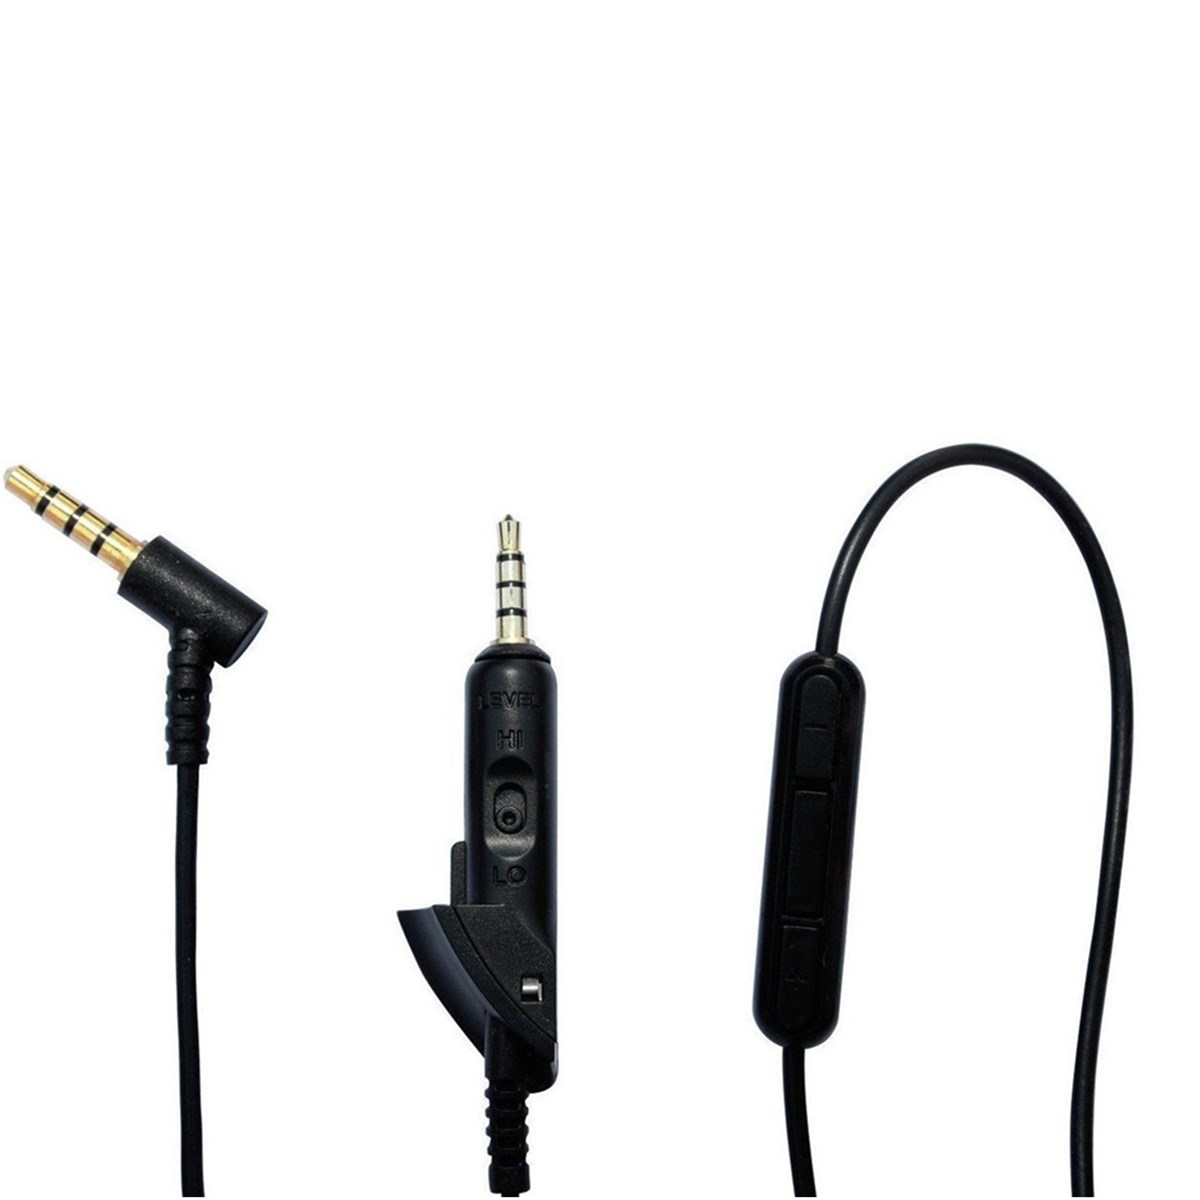 3.5mm Audio Cable Replacement 1.5m Cord Wire with Mic For Bose Quiet Comfort QC15 QC2 Headphone